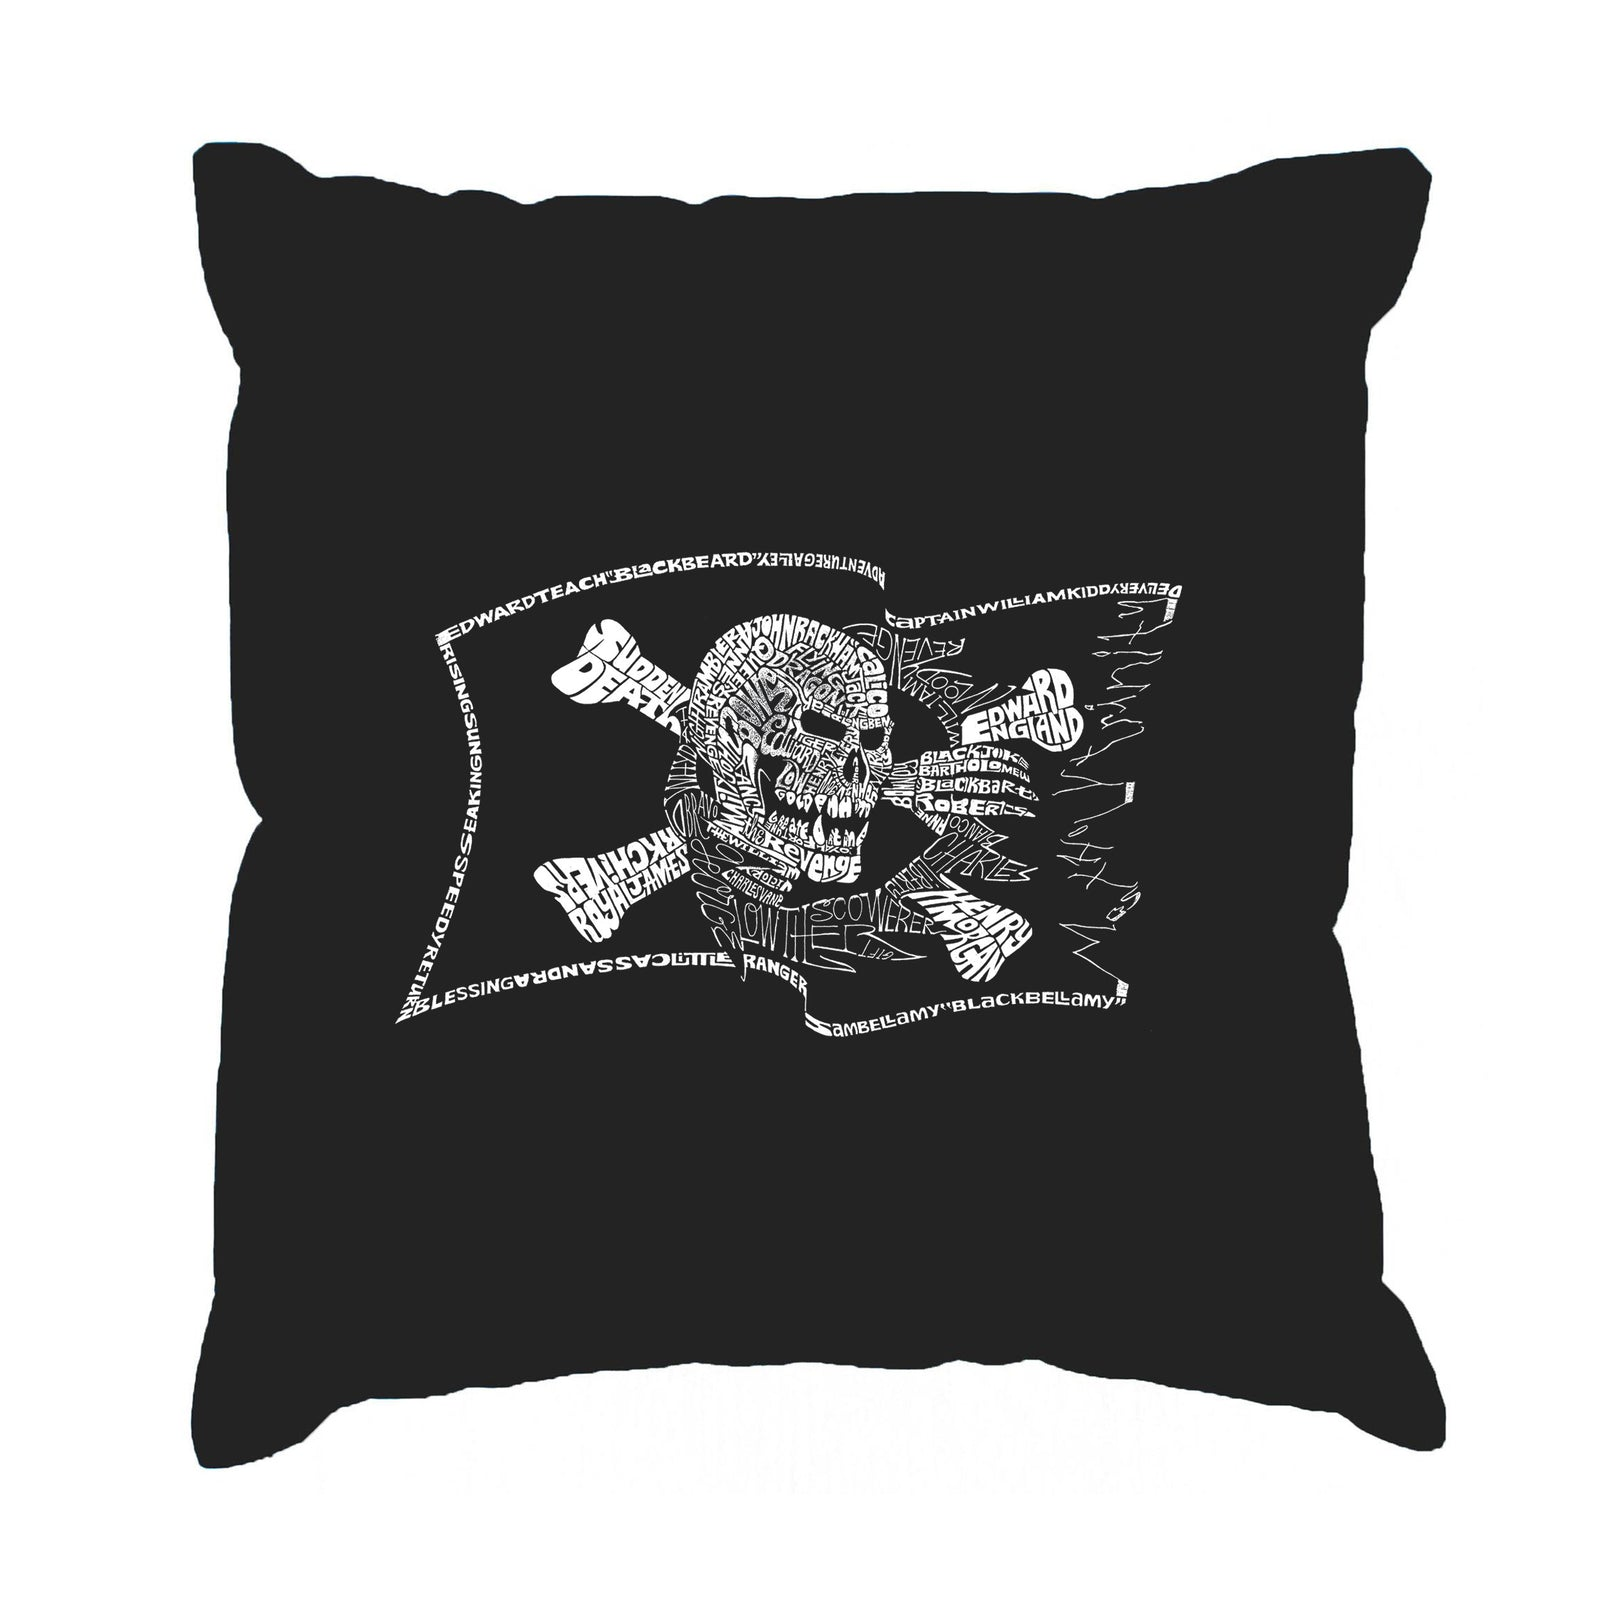 Throw Pillow Cover - FAMOUS PIRATE CAPTAINS AND SHIPS